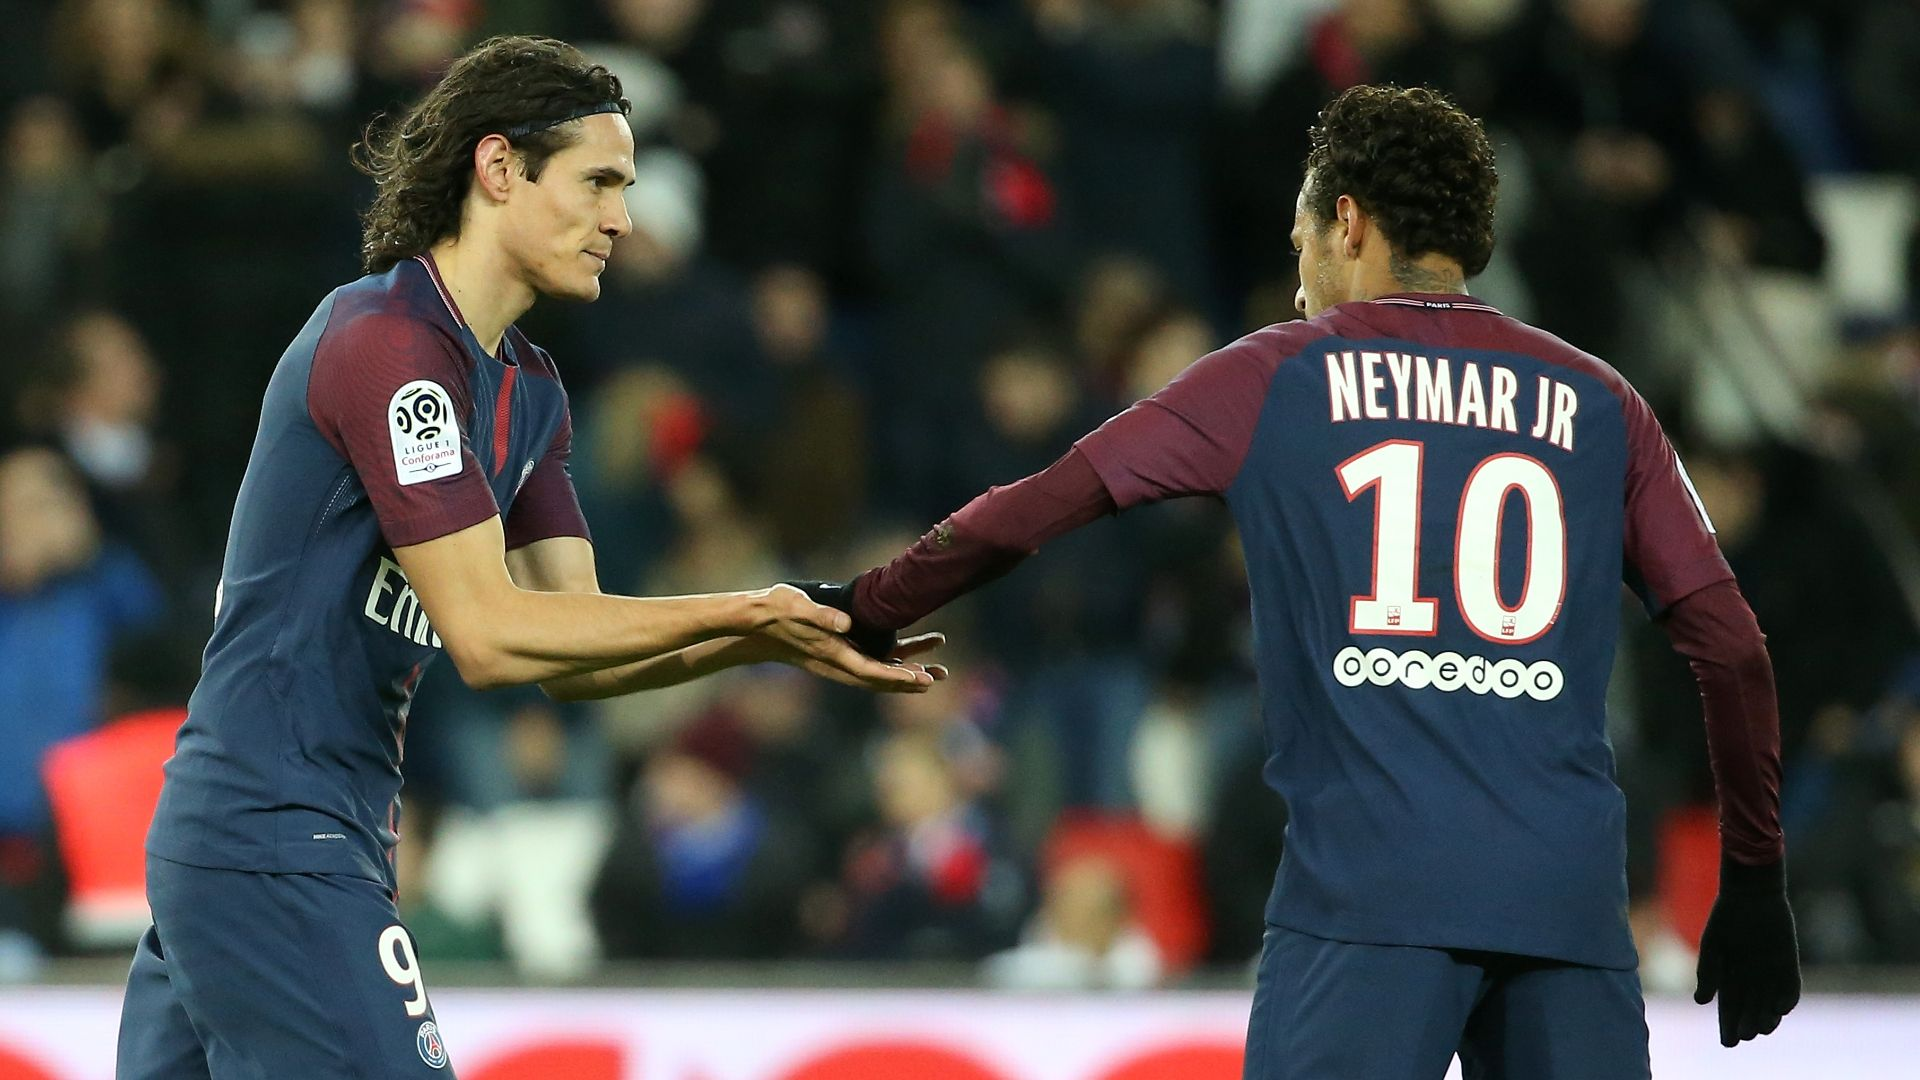 Neymar again out of PSG squad with pain